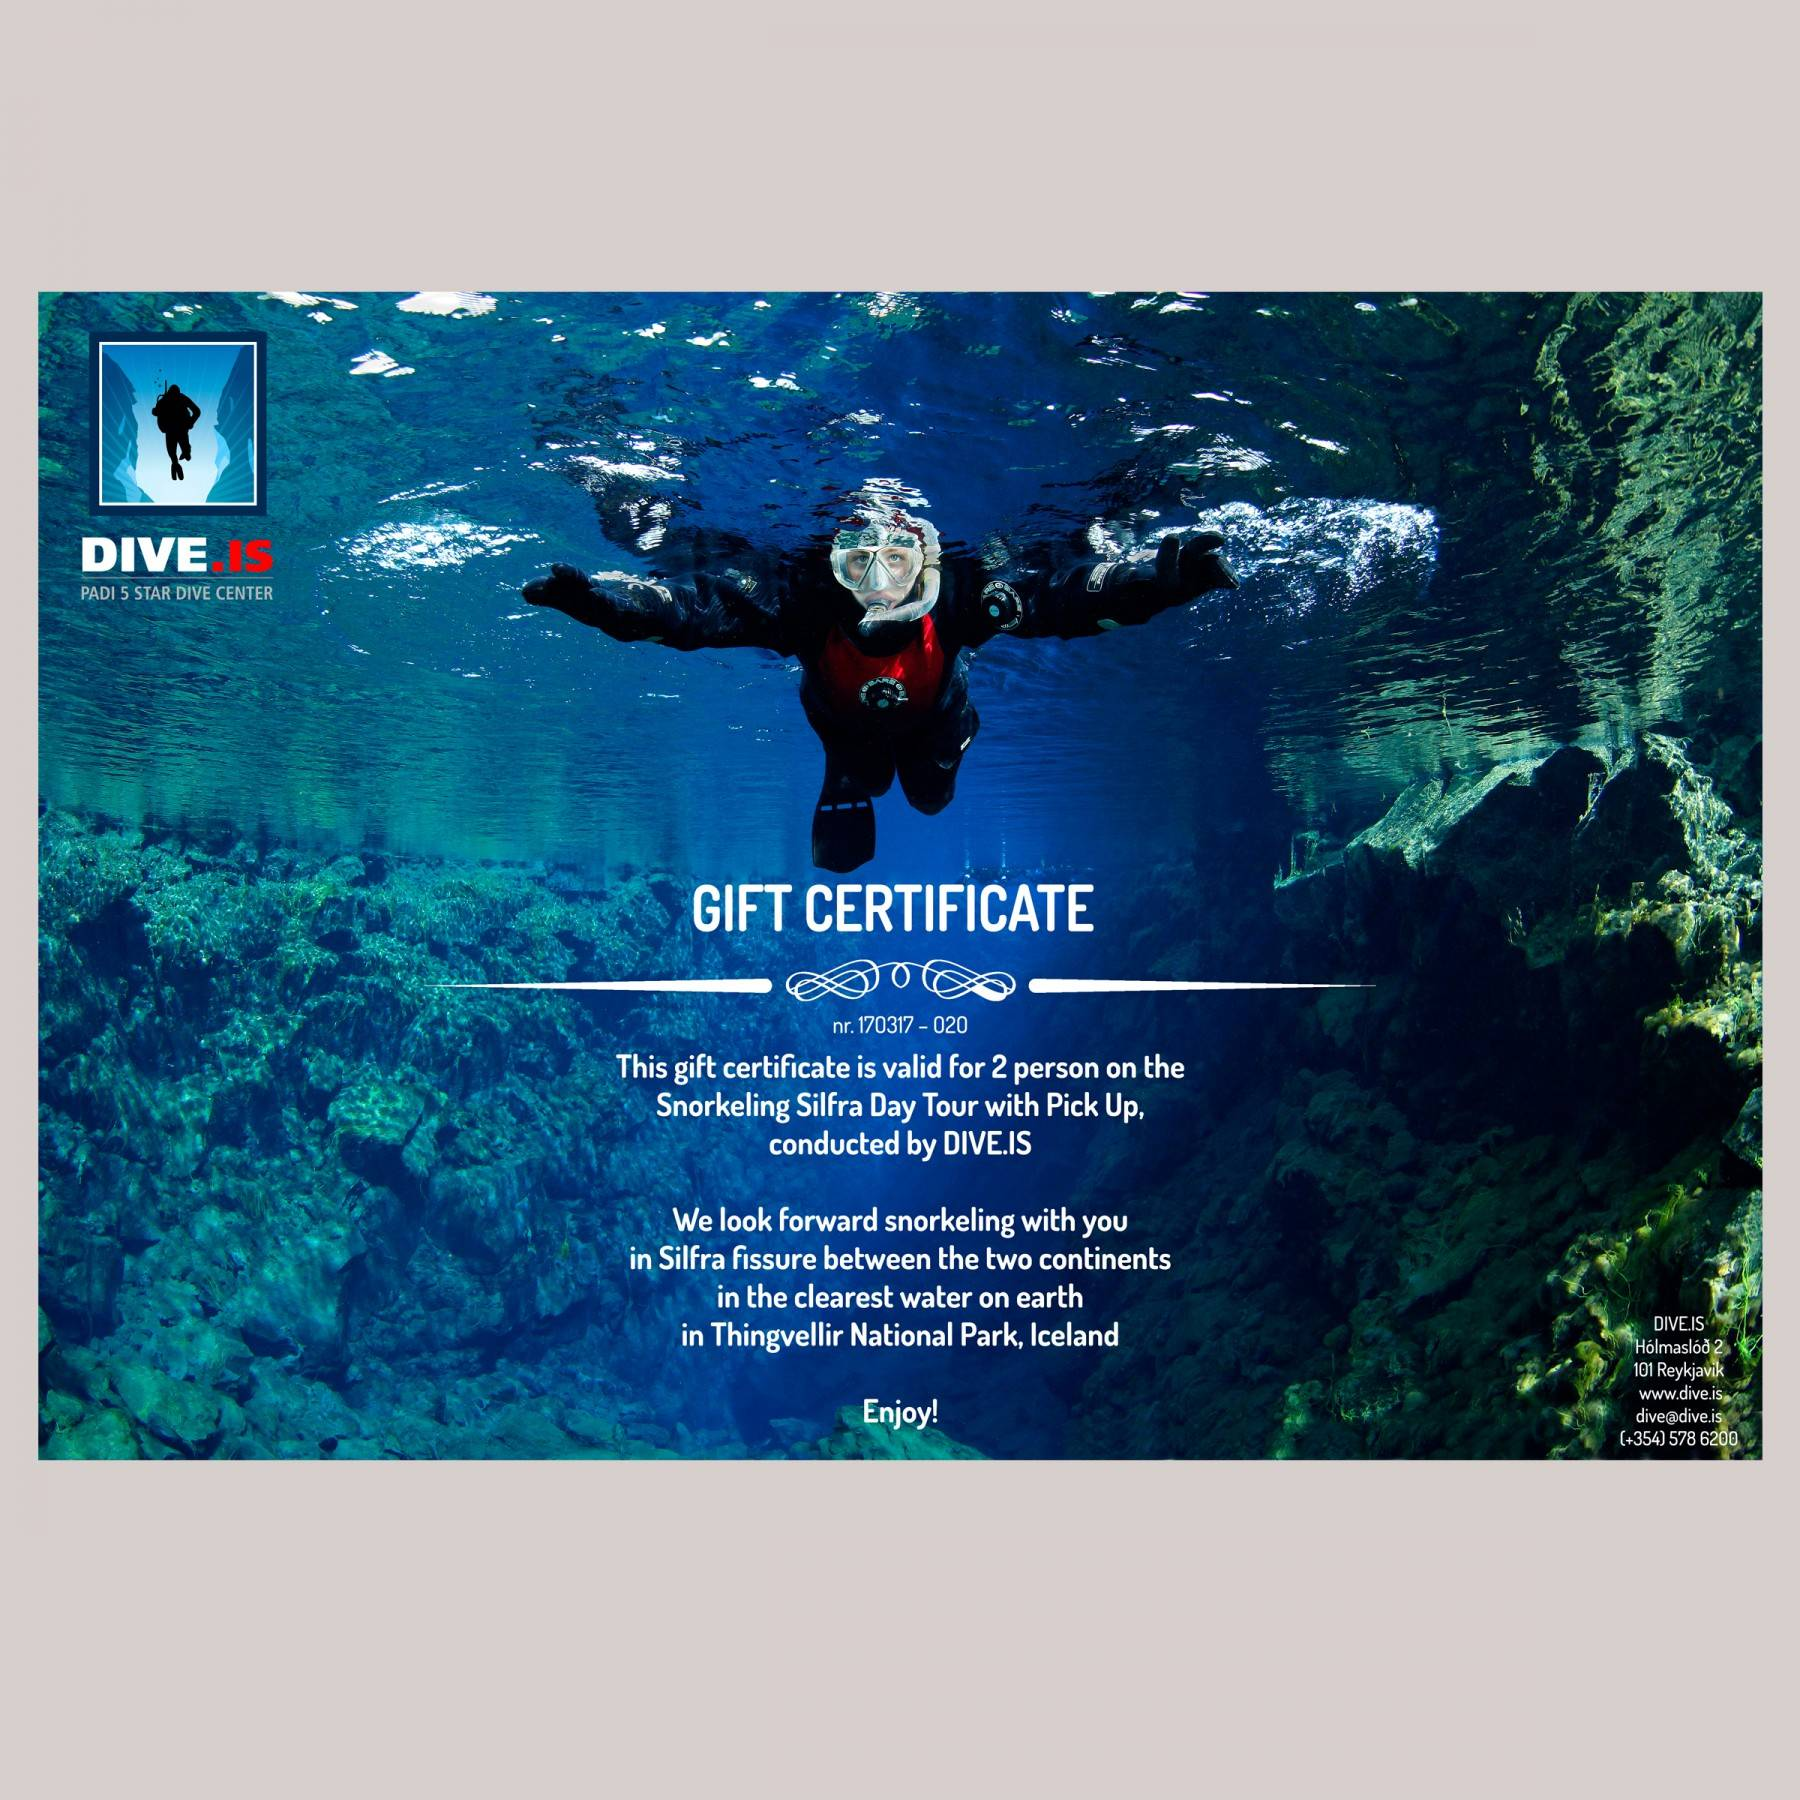 DIVE.IS Gift Certificate